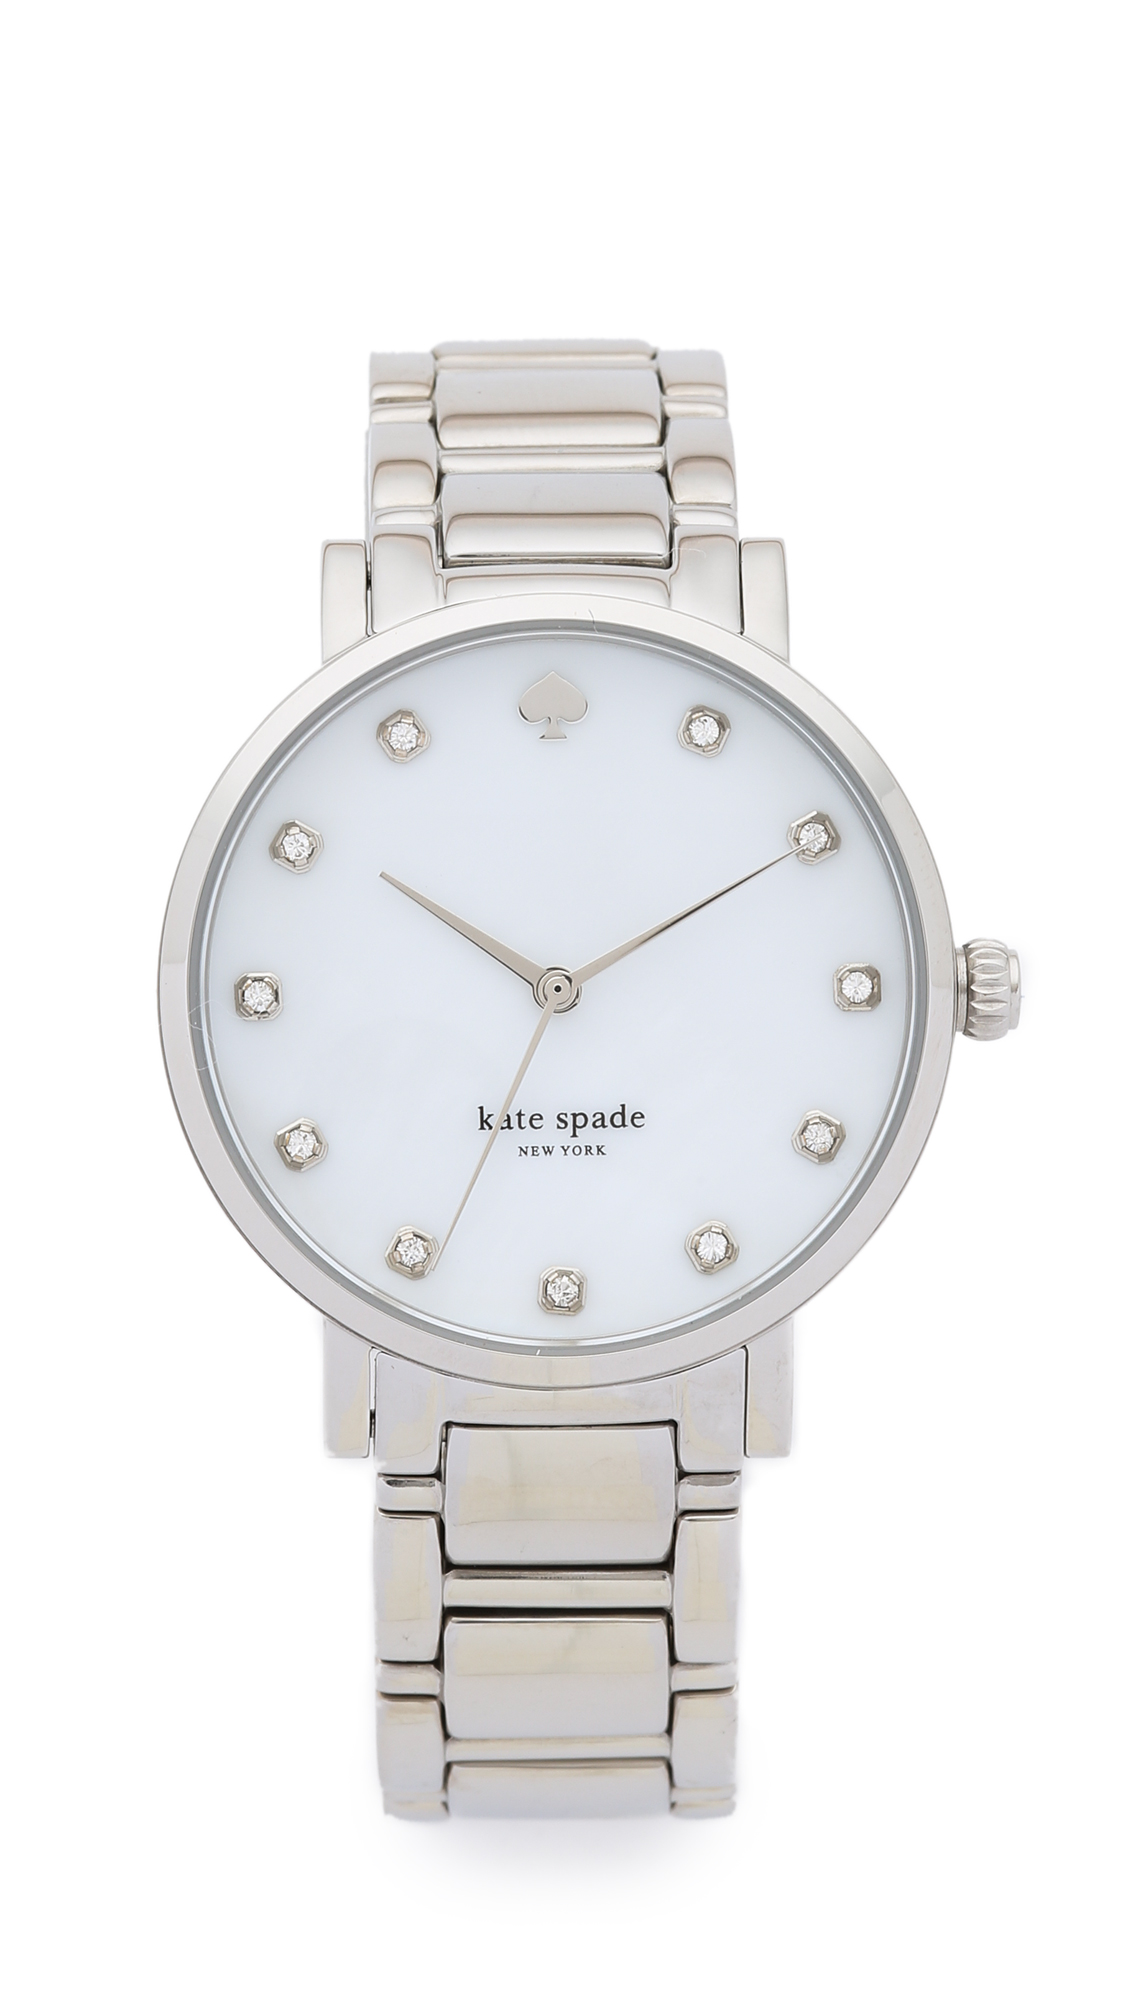 Kate Spade New York Gramercy Bracelet Watch - Silver at Shopbop